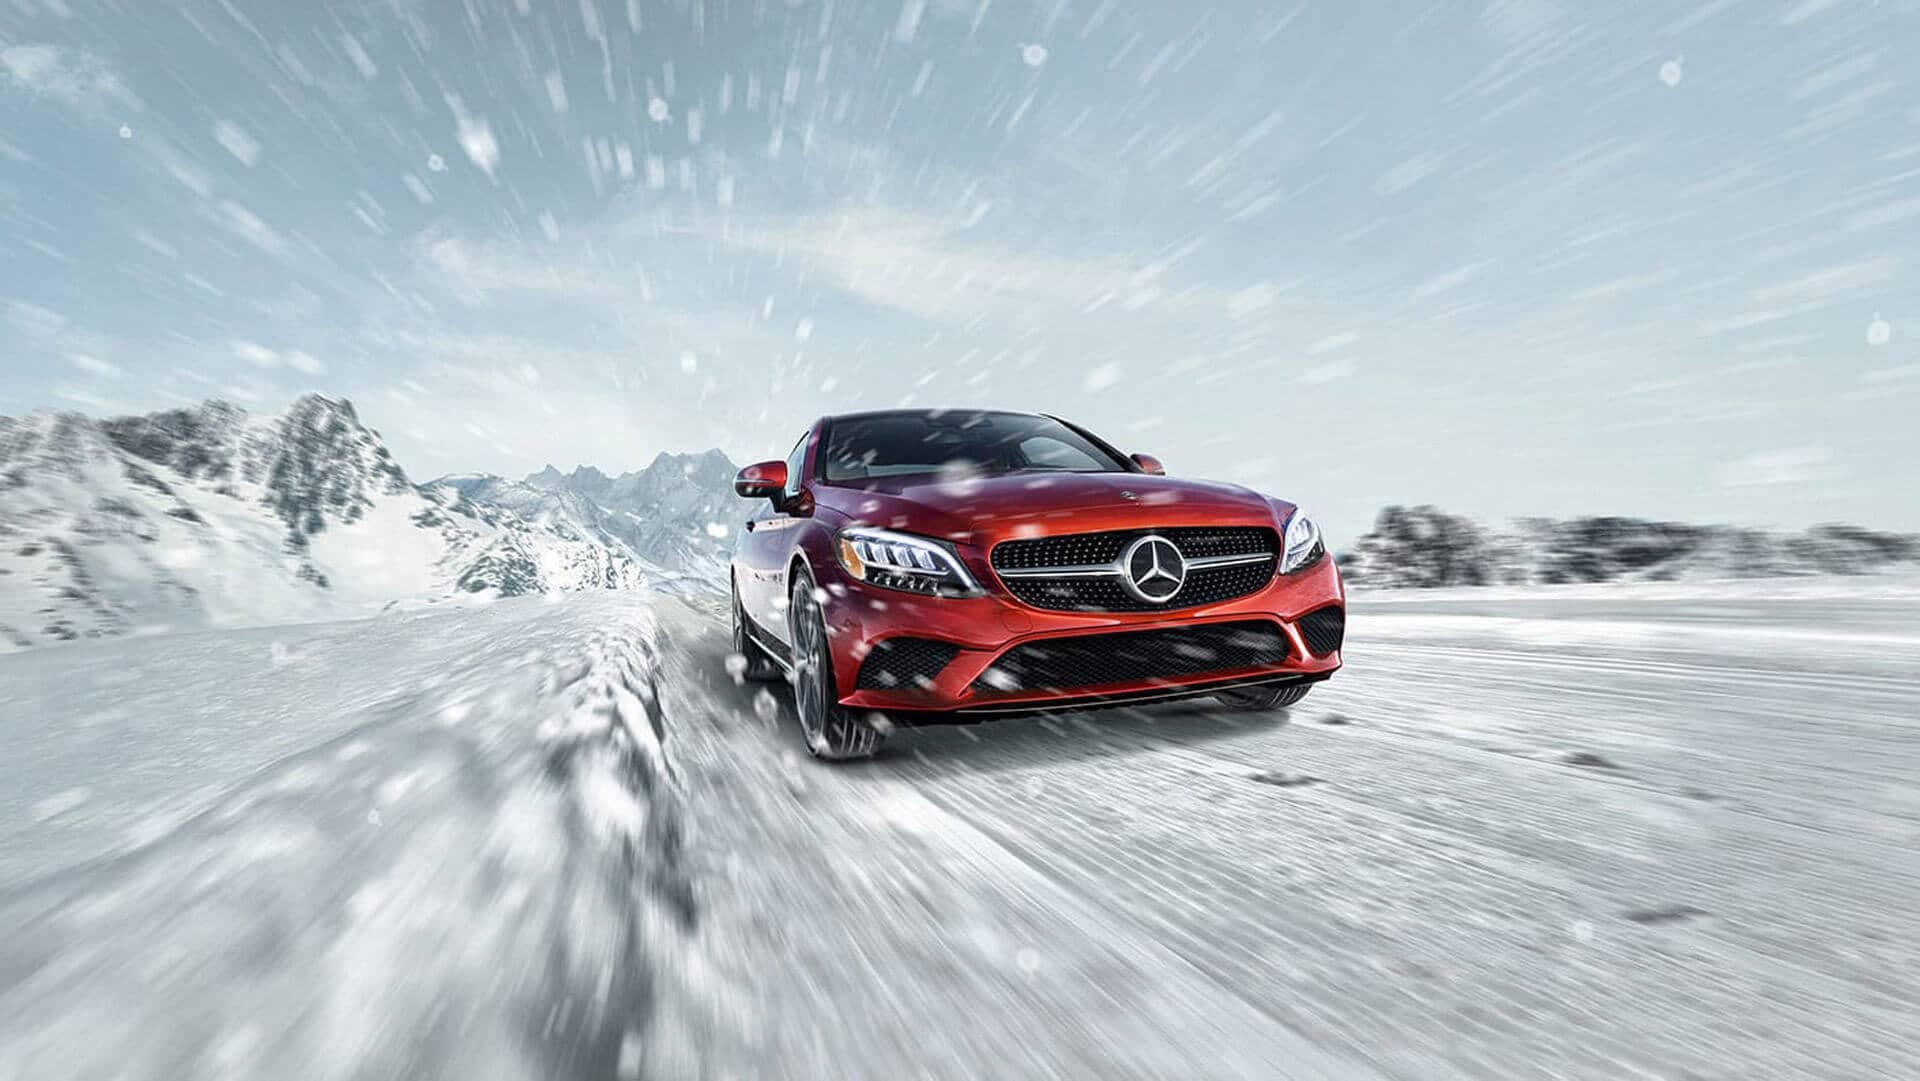 mercedes-benz C 300 4matic coupe driving in the snow